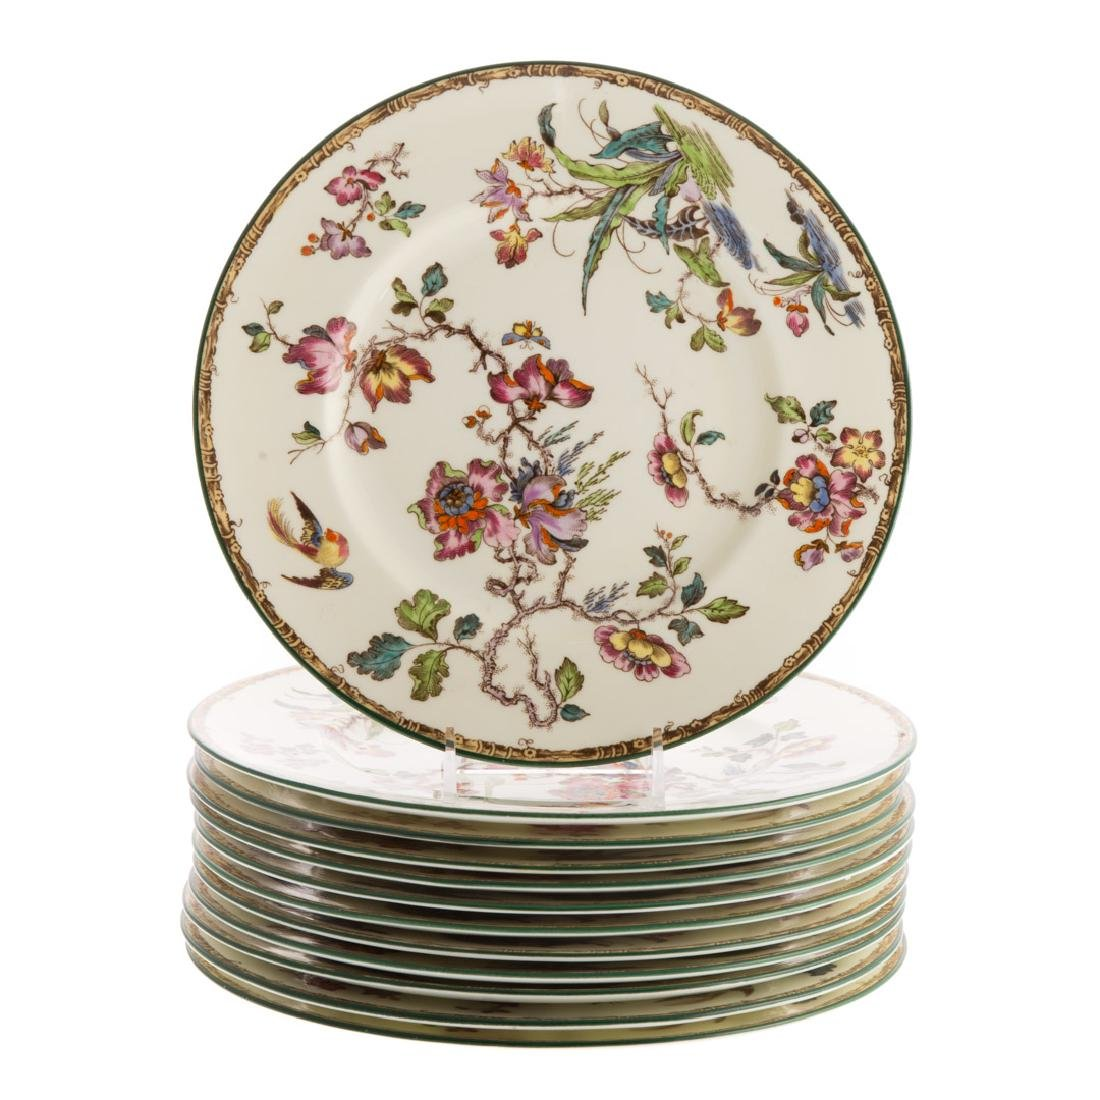 12 Wedgwood bone china dinner plates